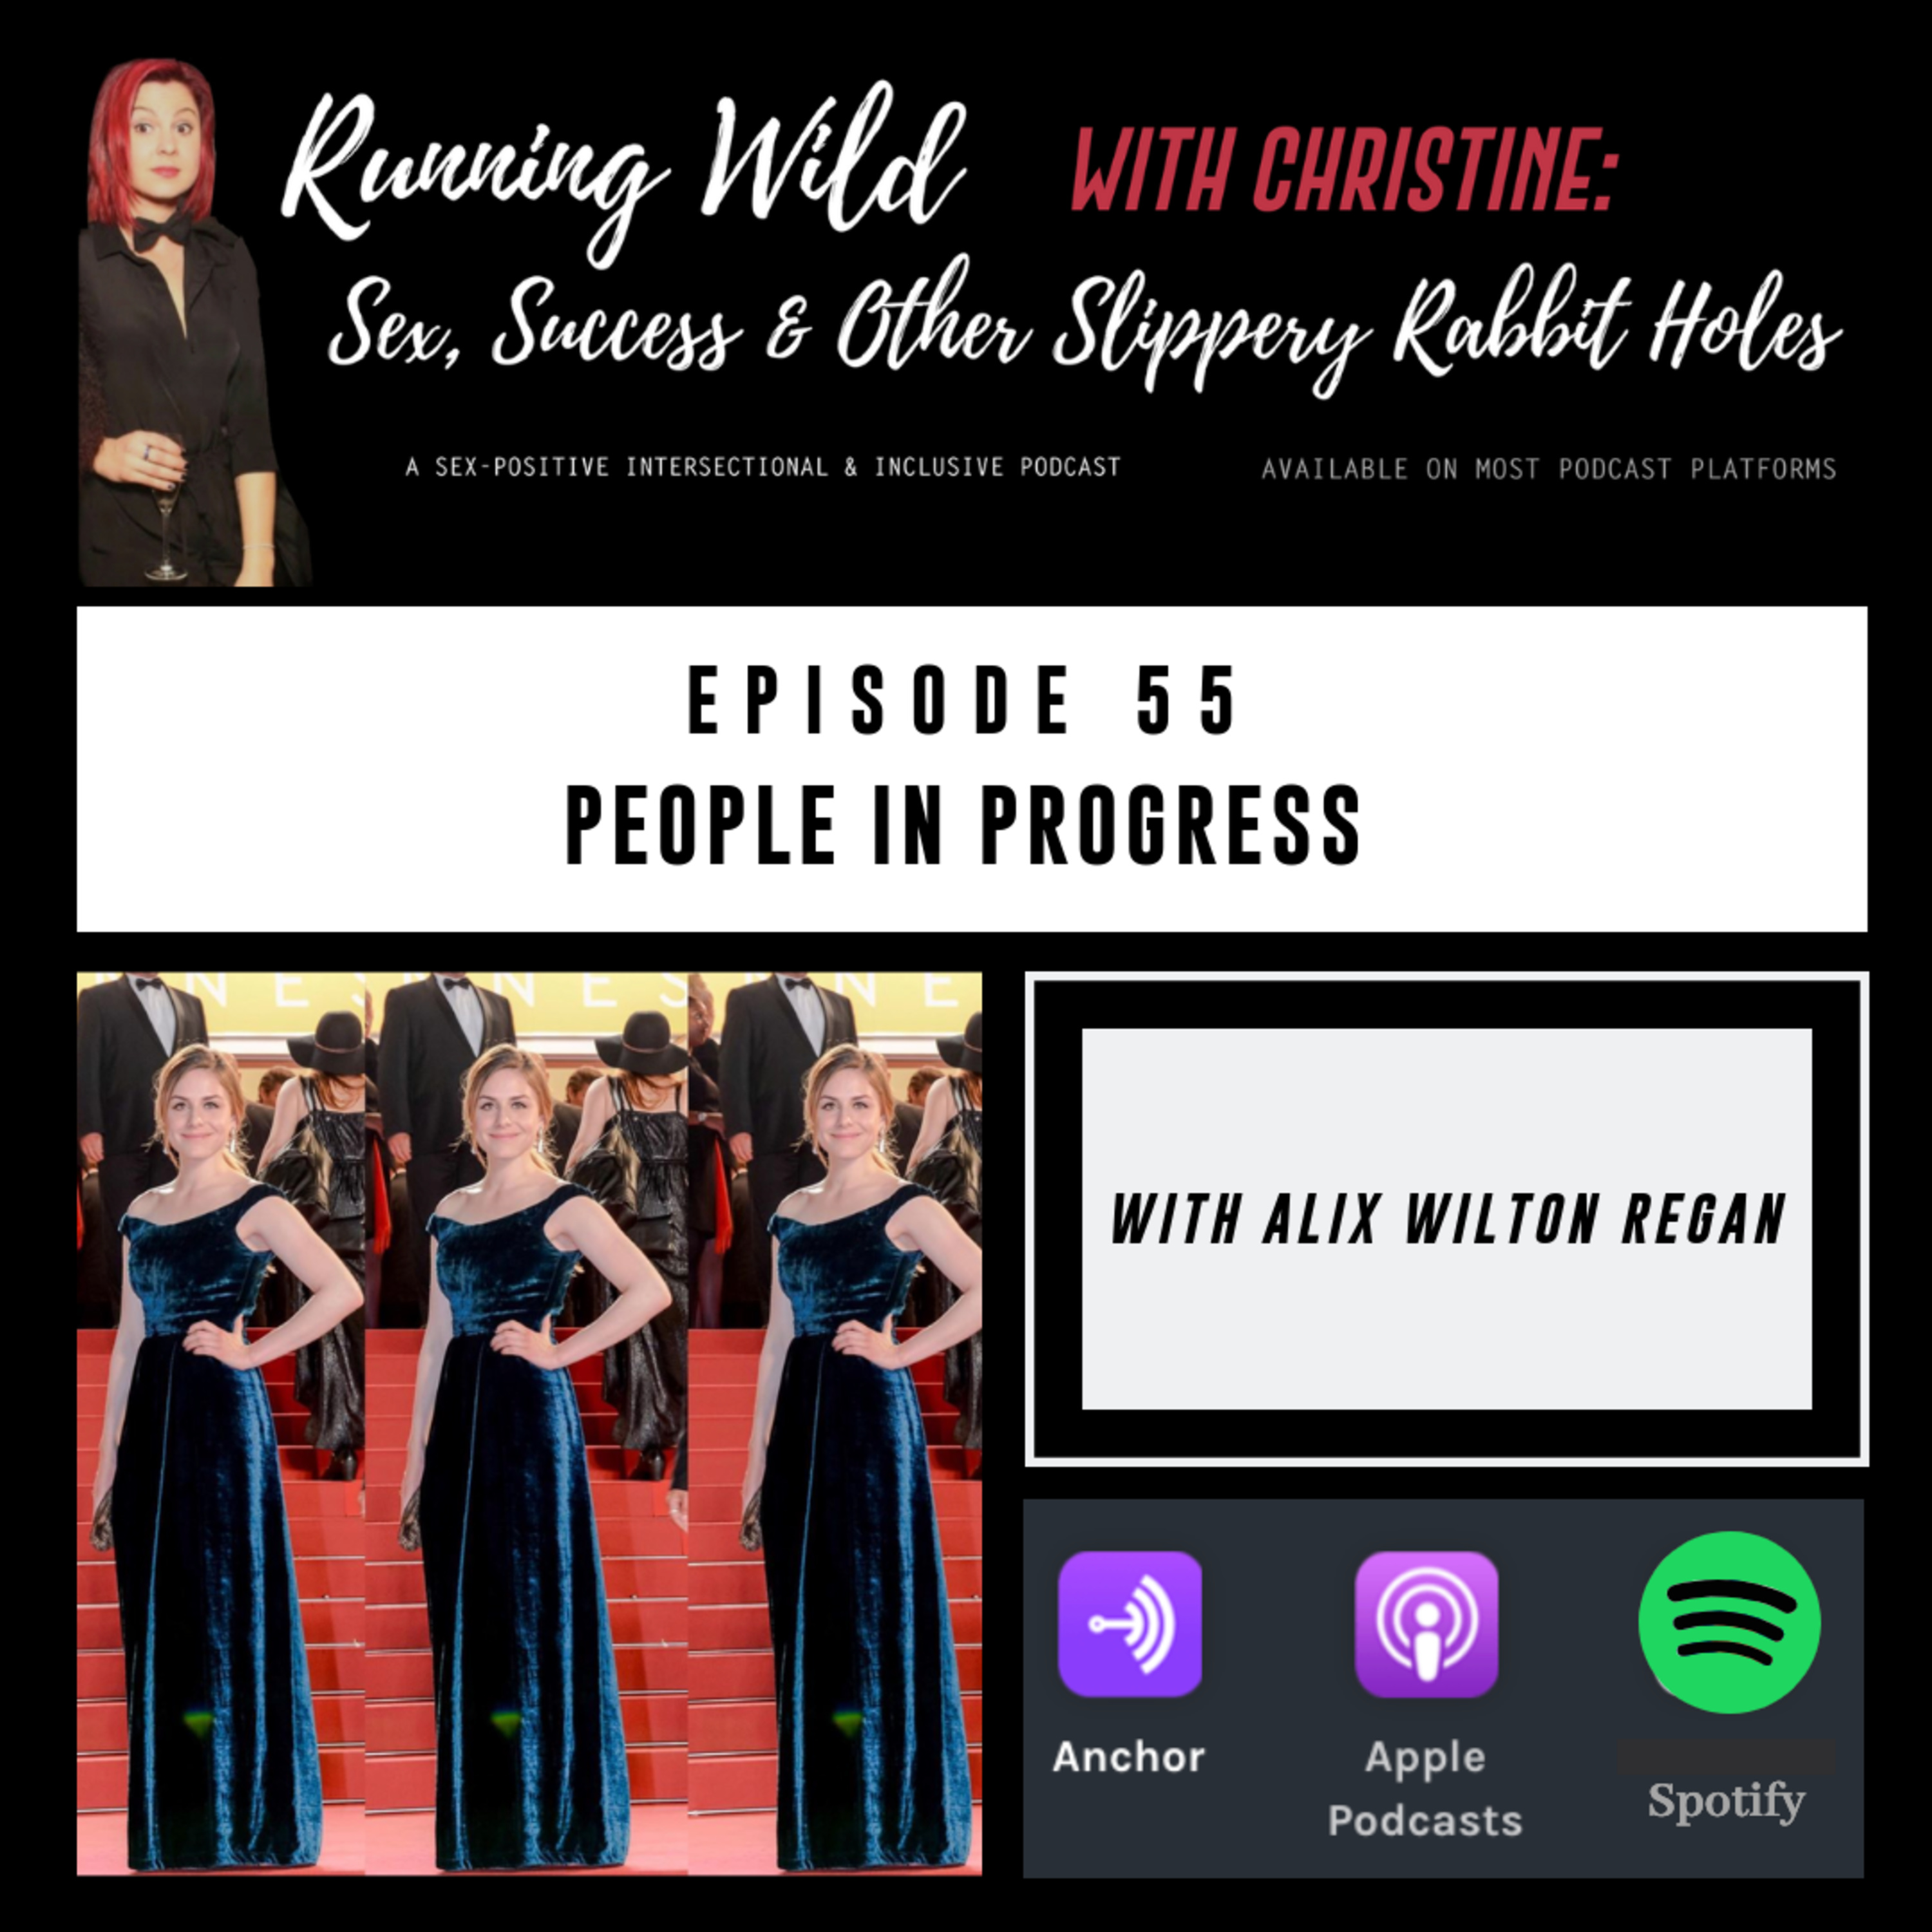 Ep 55: People in Progress, with Alix Wilton Regan